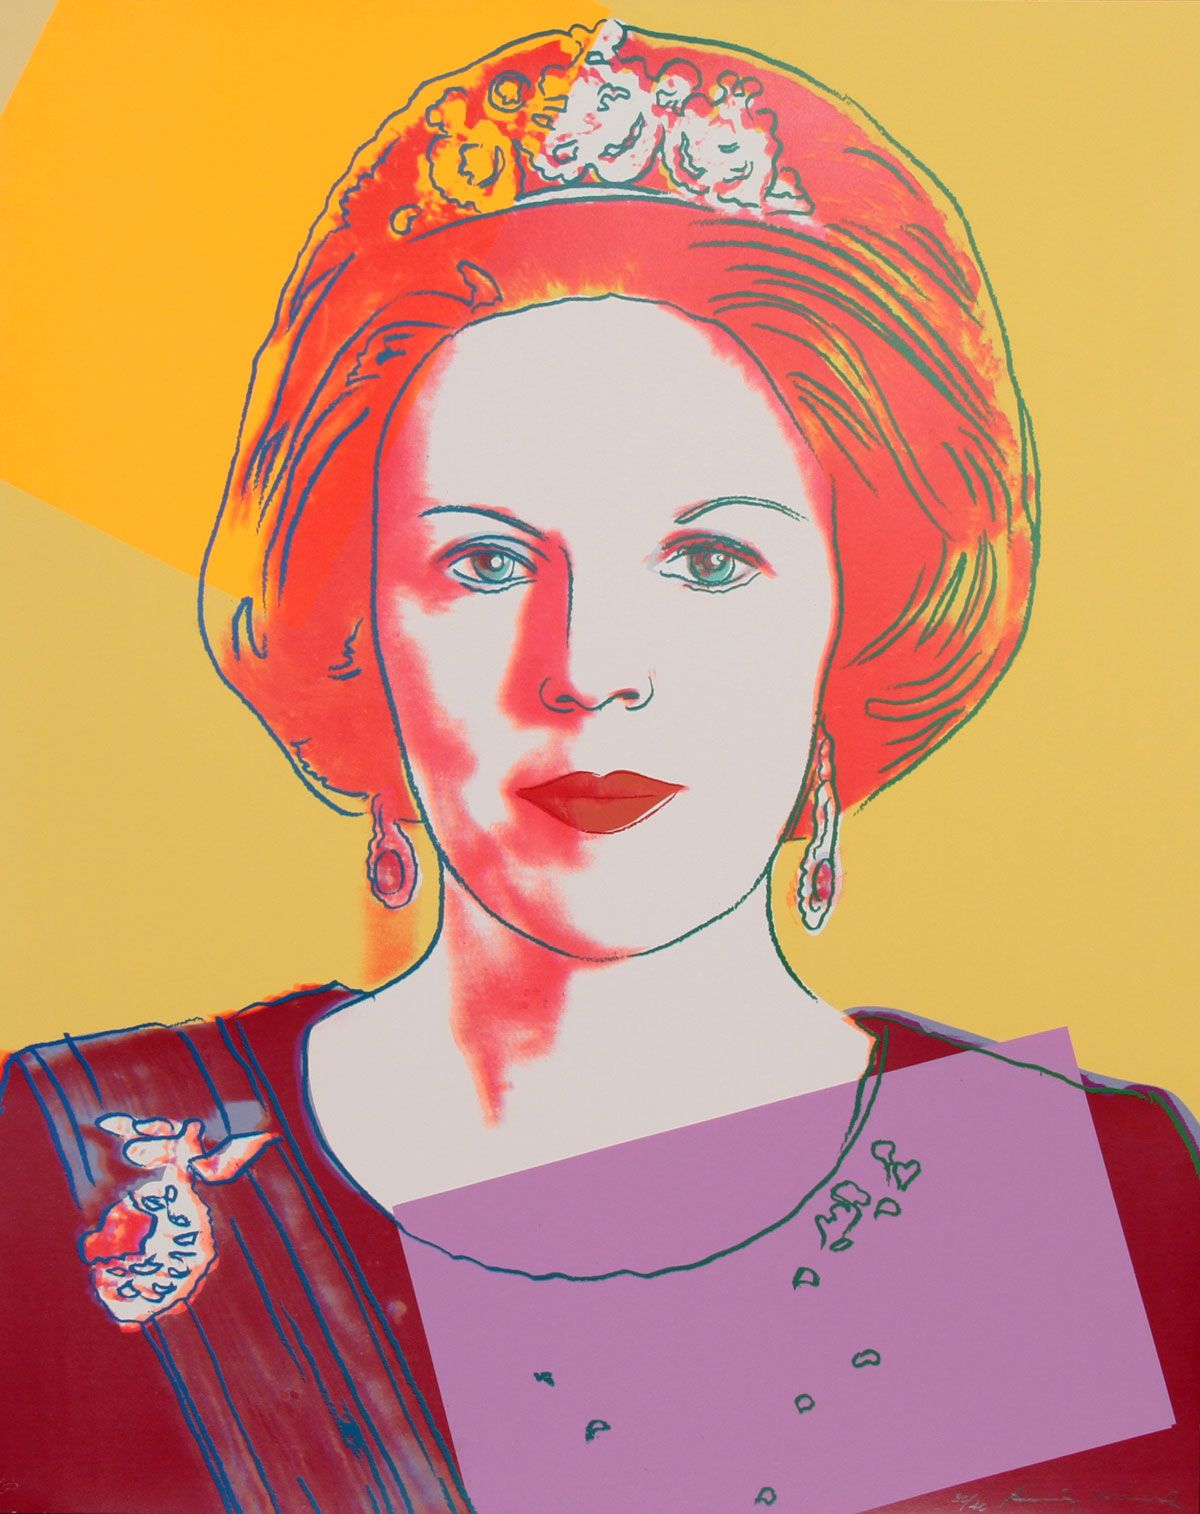 Queen Beatrix of the Netherlands 341 by Andy Warhol is part of the Reigning Queens series produced by Warhol in 1985. The portfolio consists of sixteen screenprints. Warhol depicts these four female monarchs in their own right, rather than as women who were married to a king.